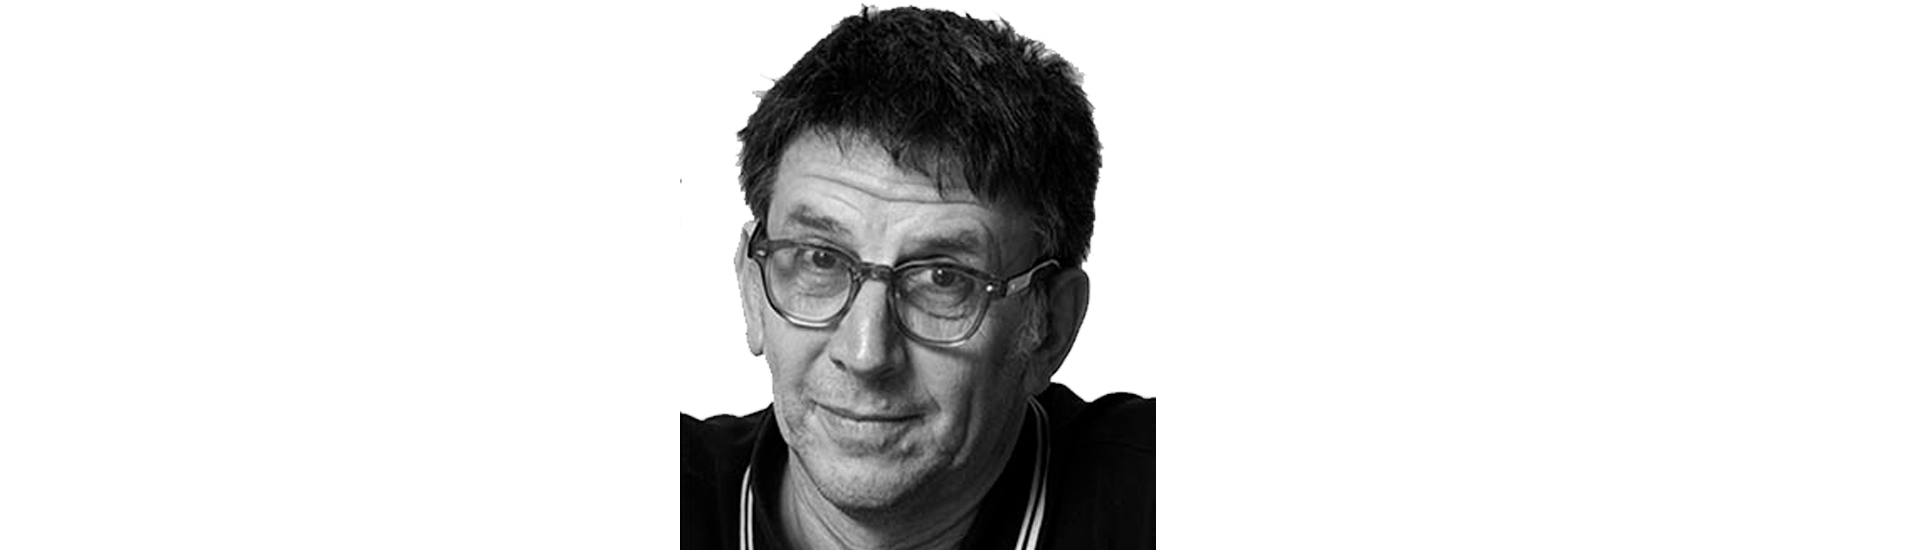 Martin Figura: Boring The Arse Off Young People